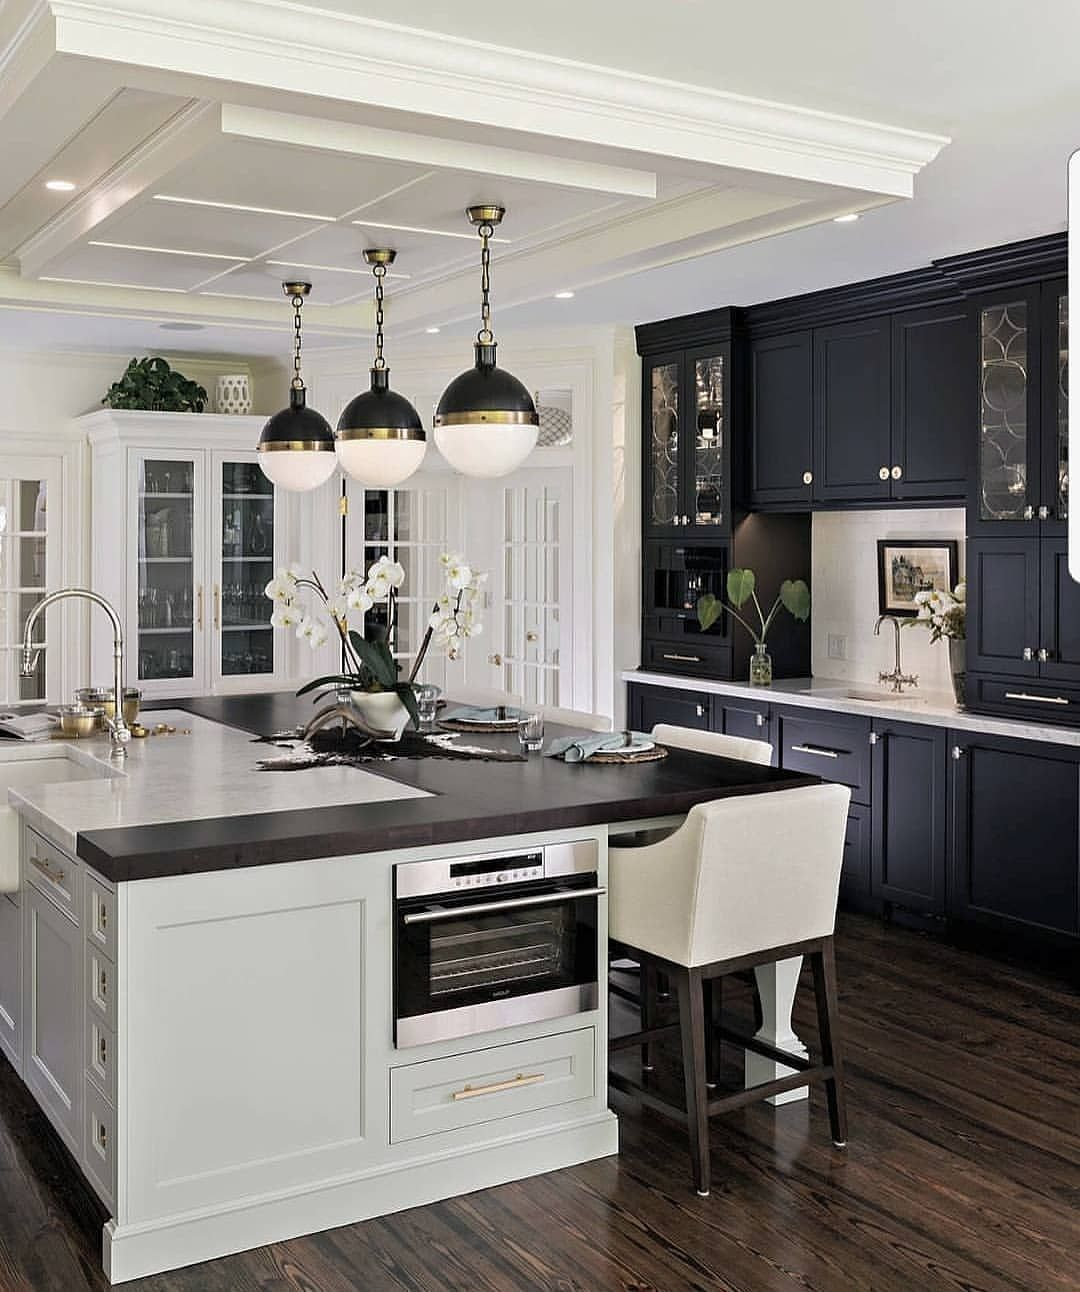 White Black Kitchen Design Ideas: Stunning Black & White Cabinetry!... . By Roomscapes